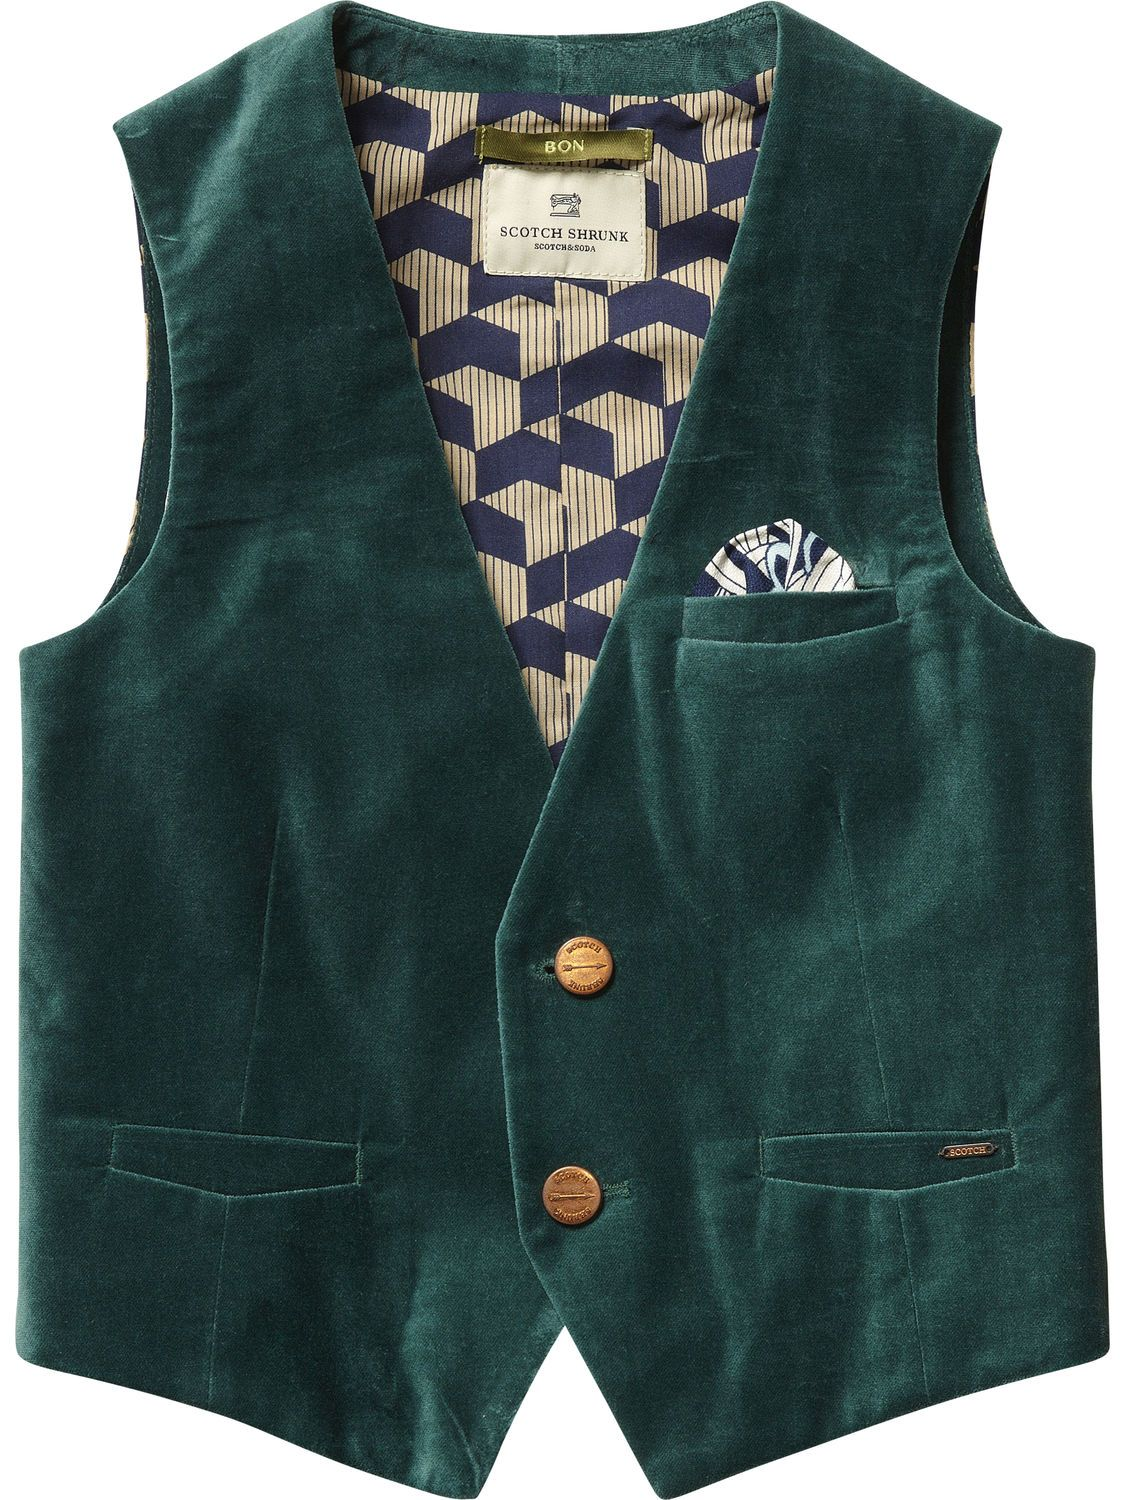 velvet vest gilet boys clothing at scotch soda holiday christmas fancy kiddie stuff. Black Bedroom Furniture Sets. Home Design Ideas